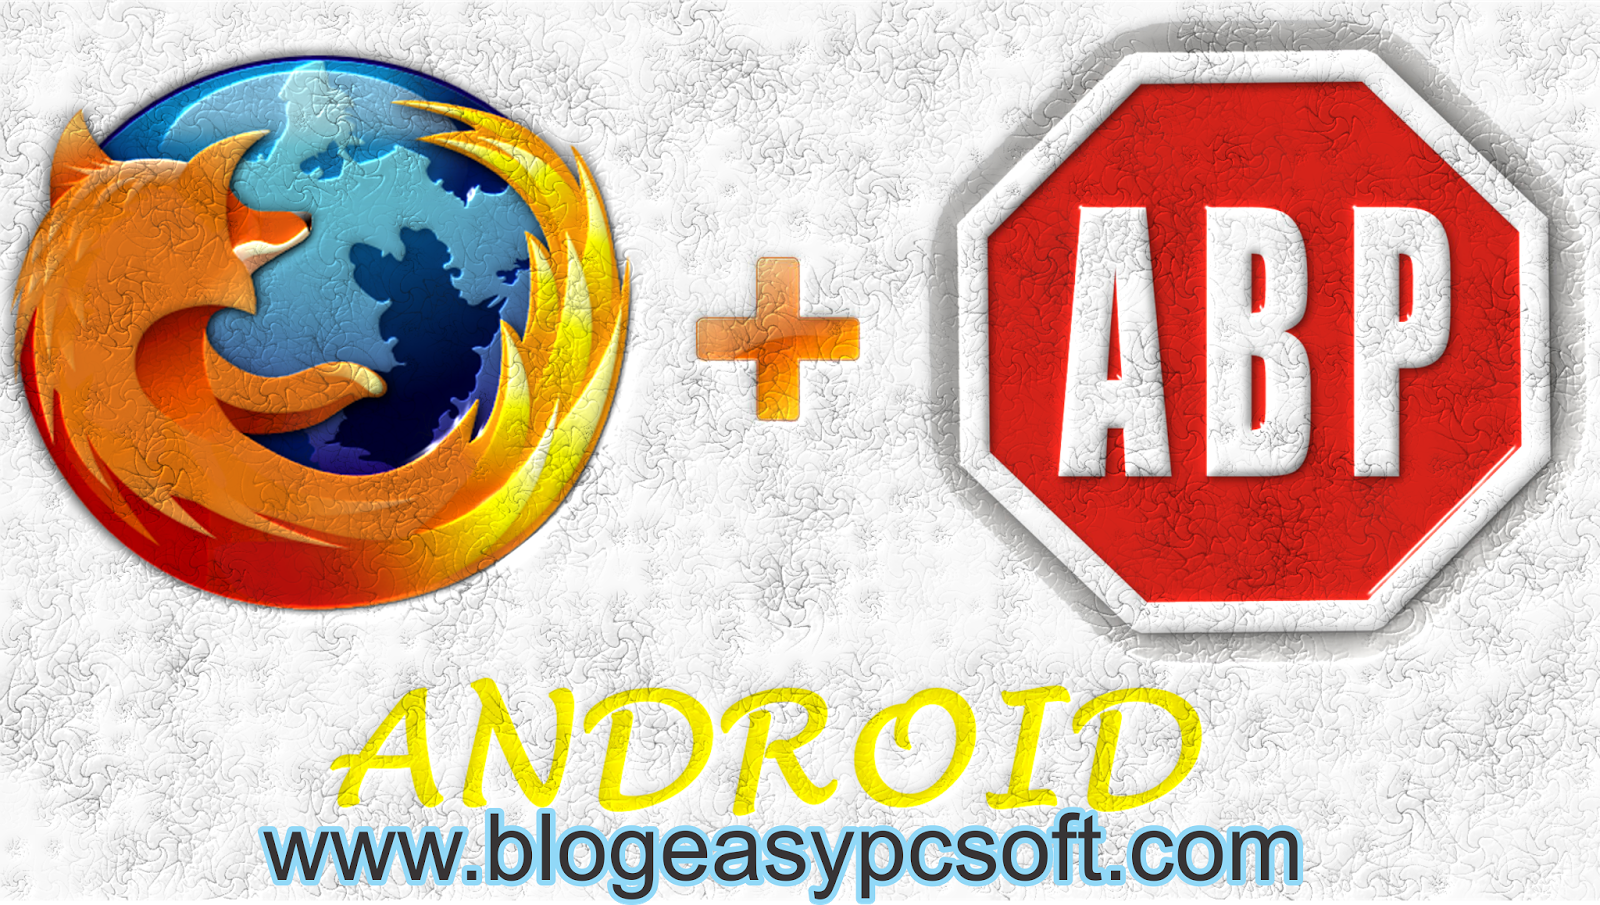 How to block ads in firefox (Android) | EASY PC SOFT